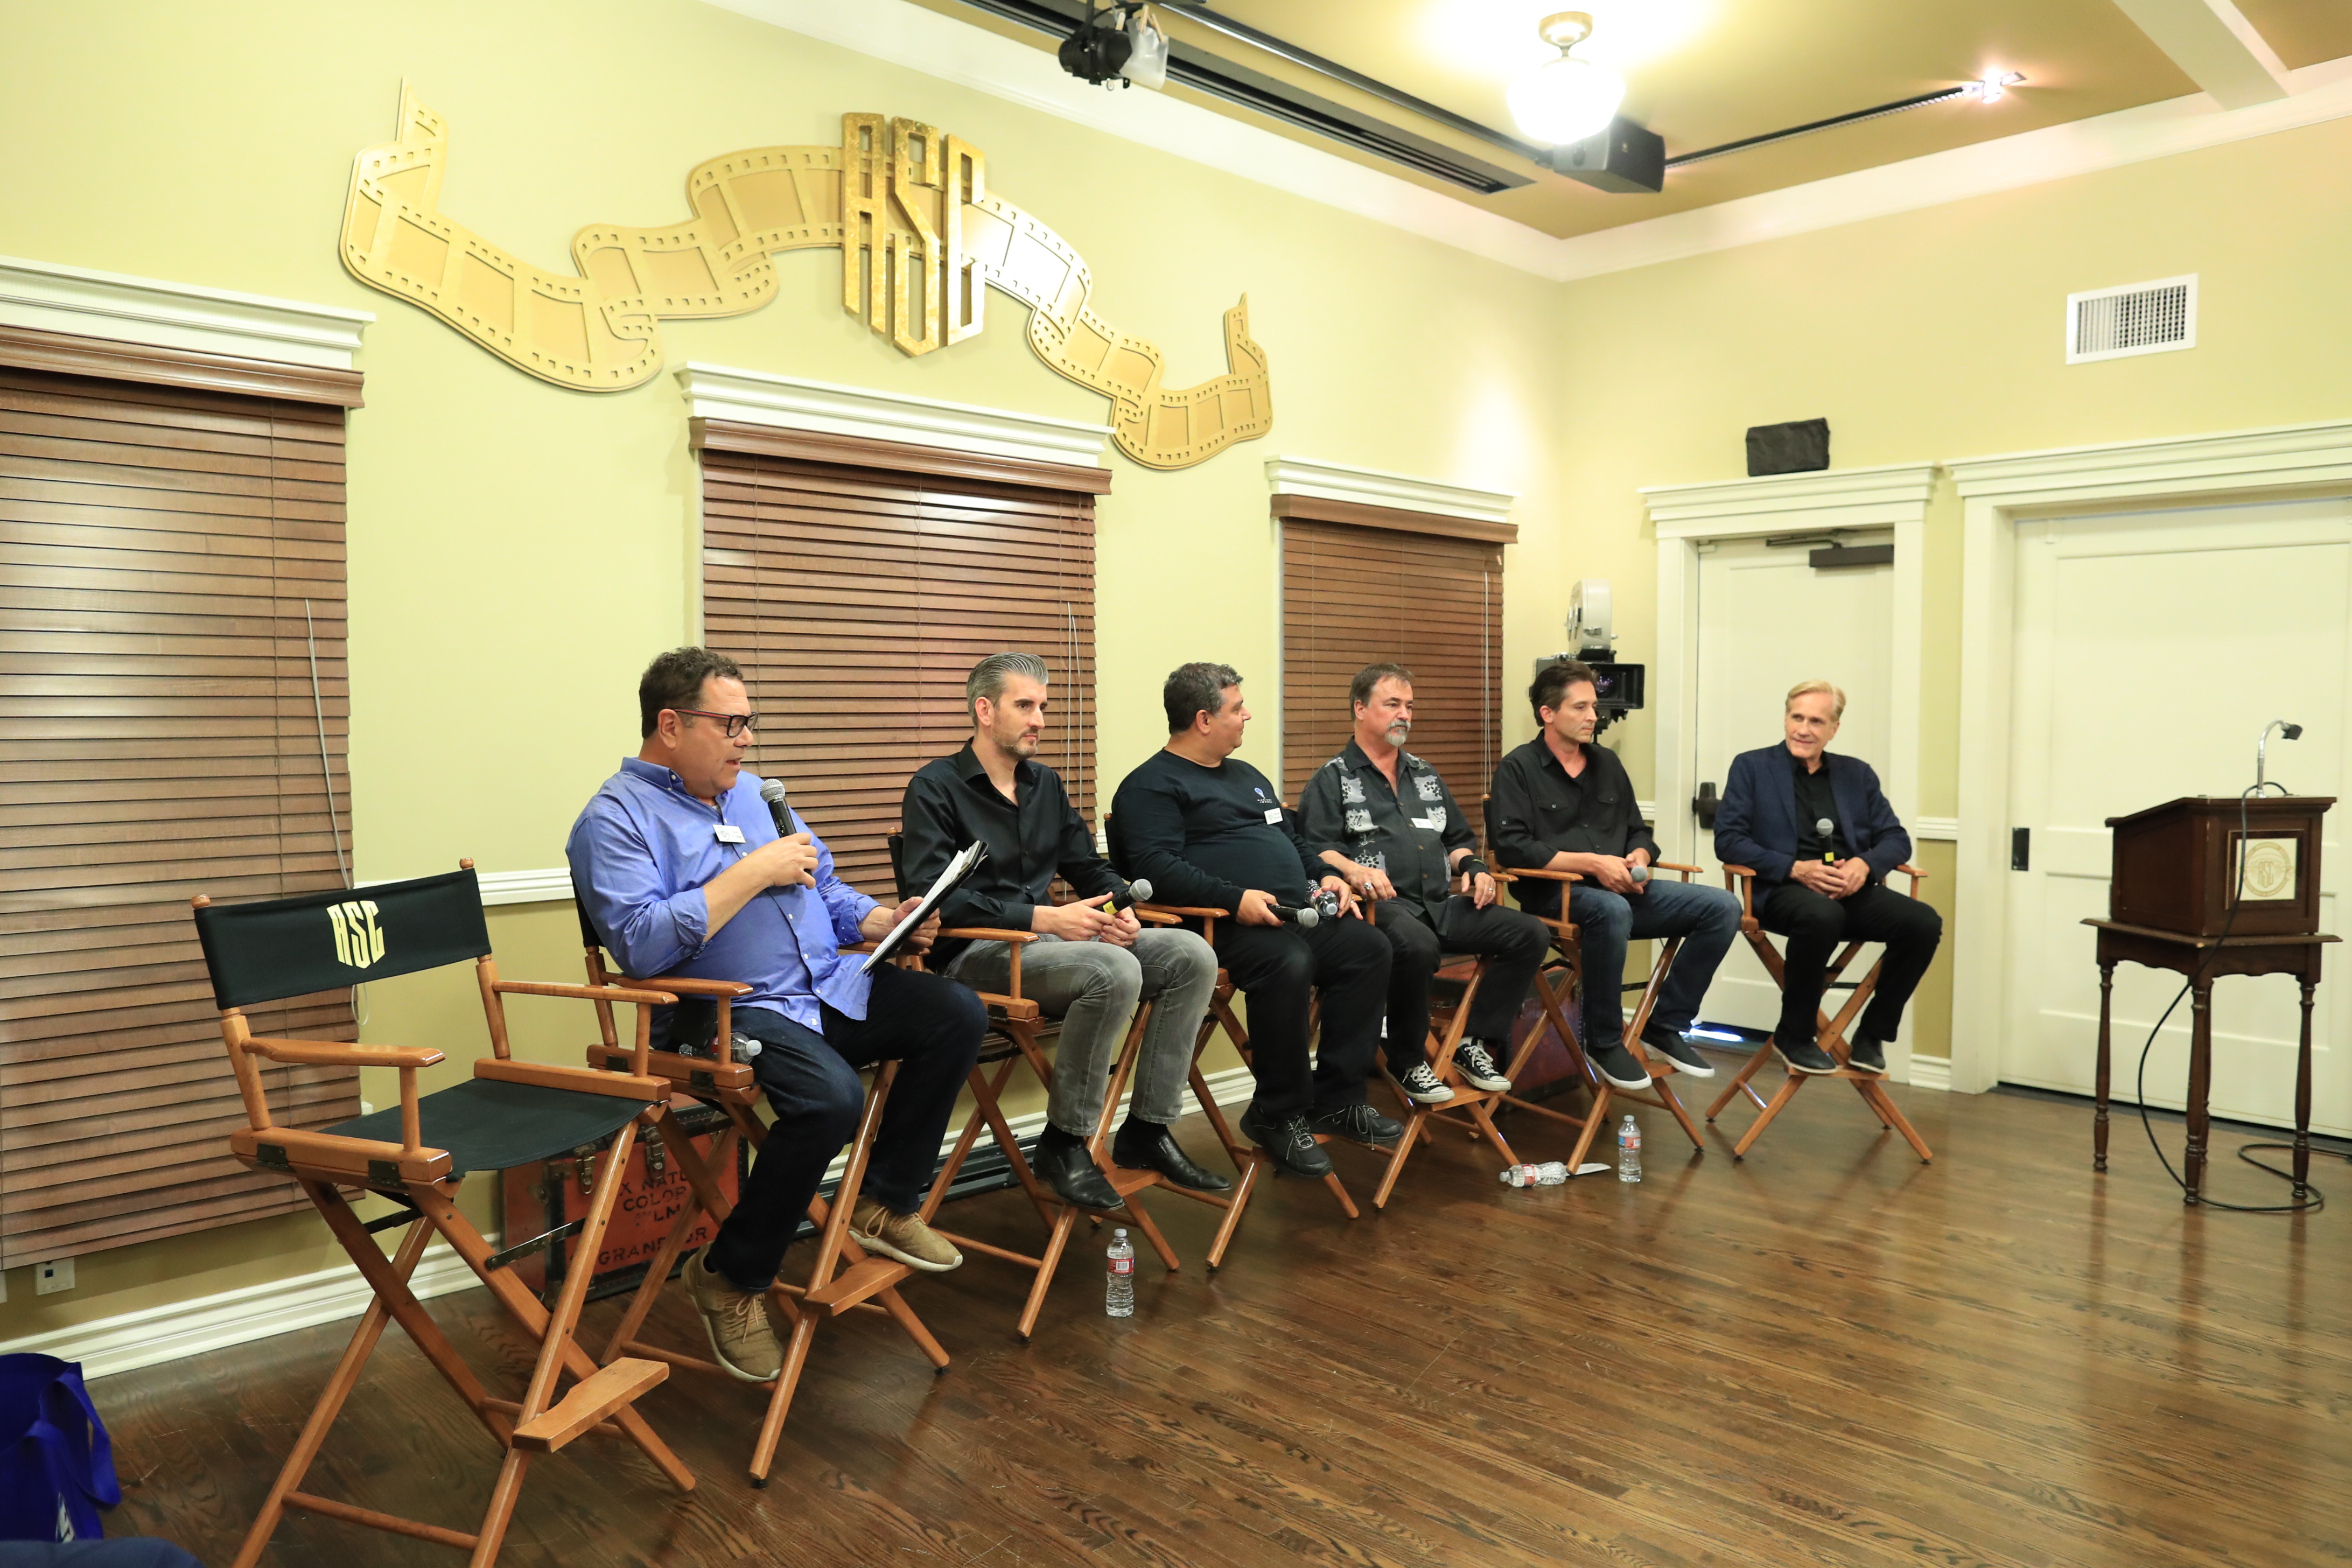 The panel discussing VR at the ASC Clubhouse was moderated by 3ality chief executive Steve Schklairand included David Stump, ASC; Virtual Reality Company chief executive Chris Edwards; director Randal Kleiser; Radiant Images co-founder Michael Mansouri; Sony Pictures Entertainment vice president of production technology Scott Barbour; and Virtual Reality Company founder/vfx artist Rob Stromberg. Photo by James Neihouse, ASC